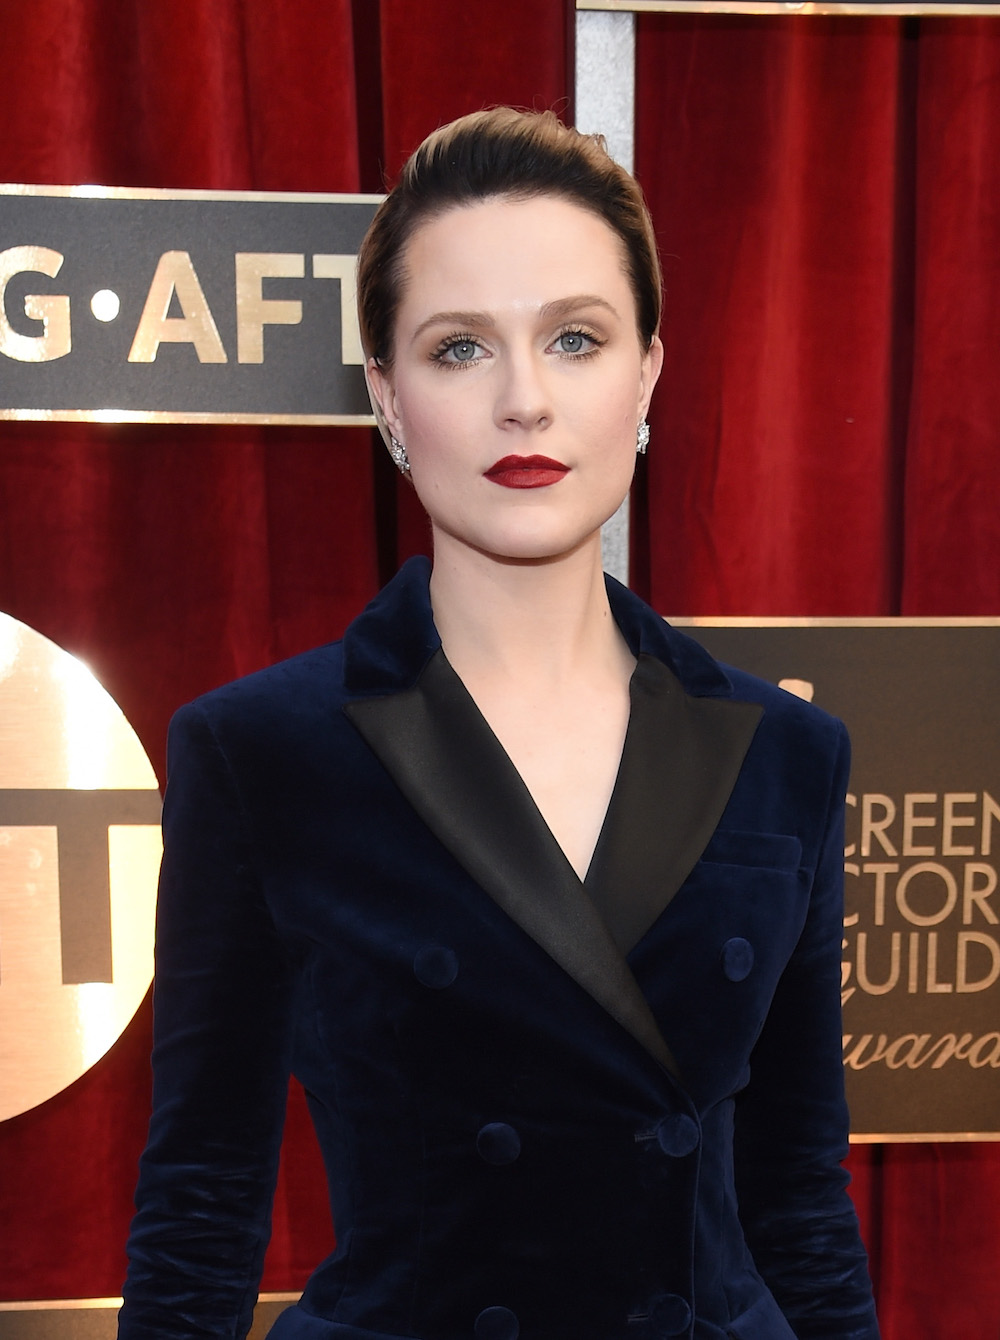 Evan Rachel Wood's makeup artist used one of our all-time favorite CC creams for her SAG beauty look